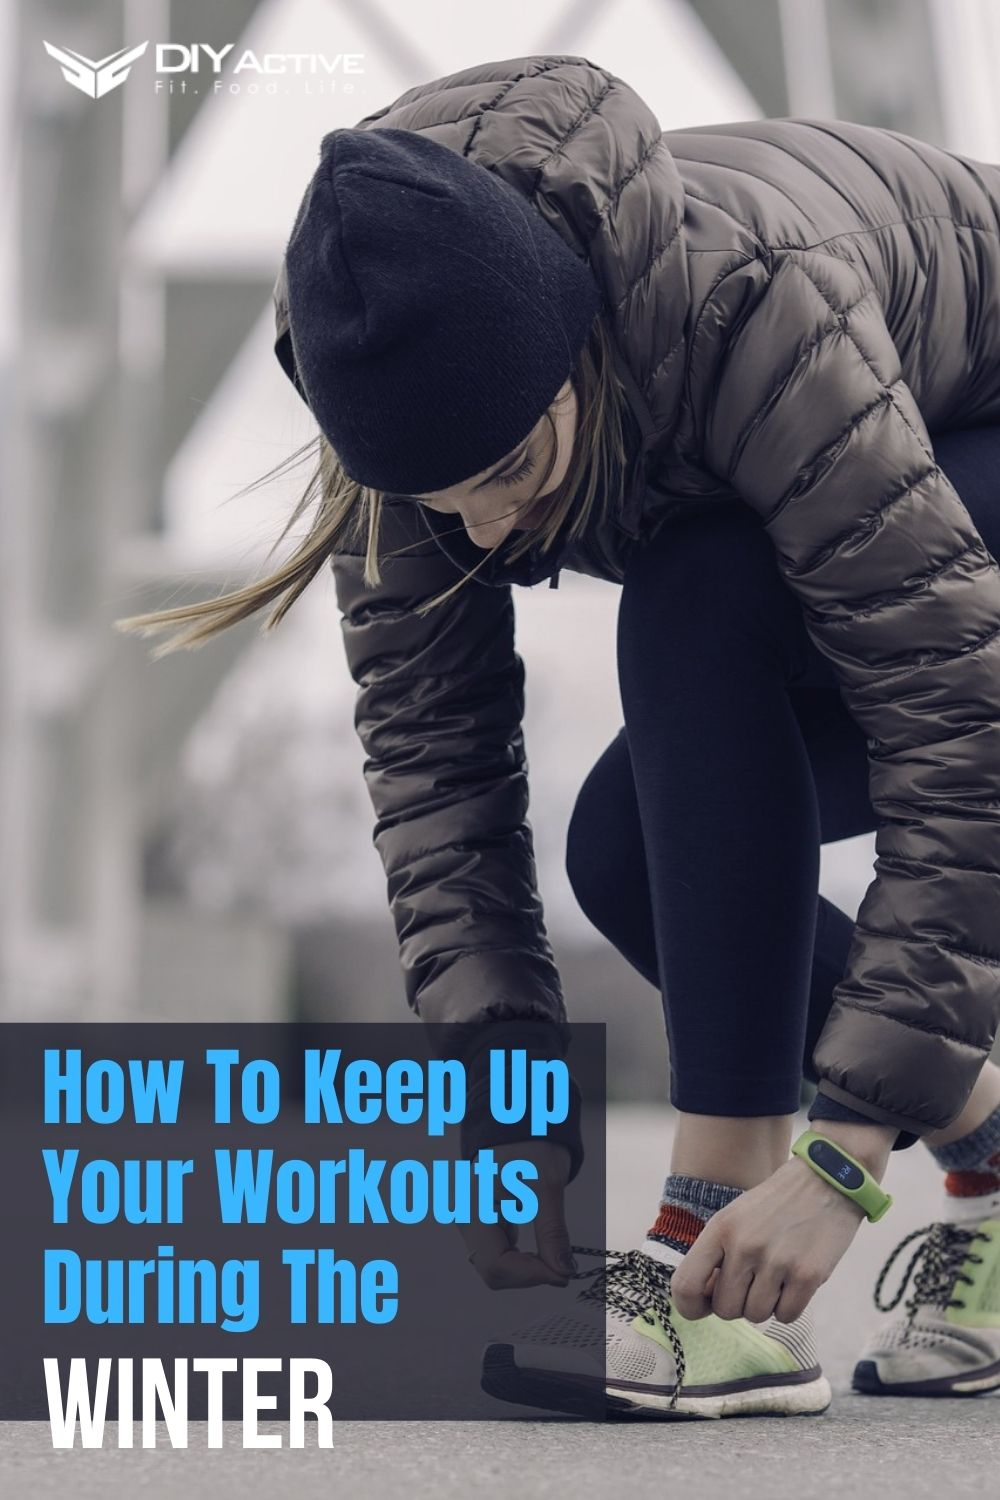 How To Keep Up Your Workouts During The Winter